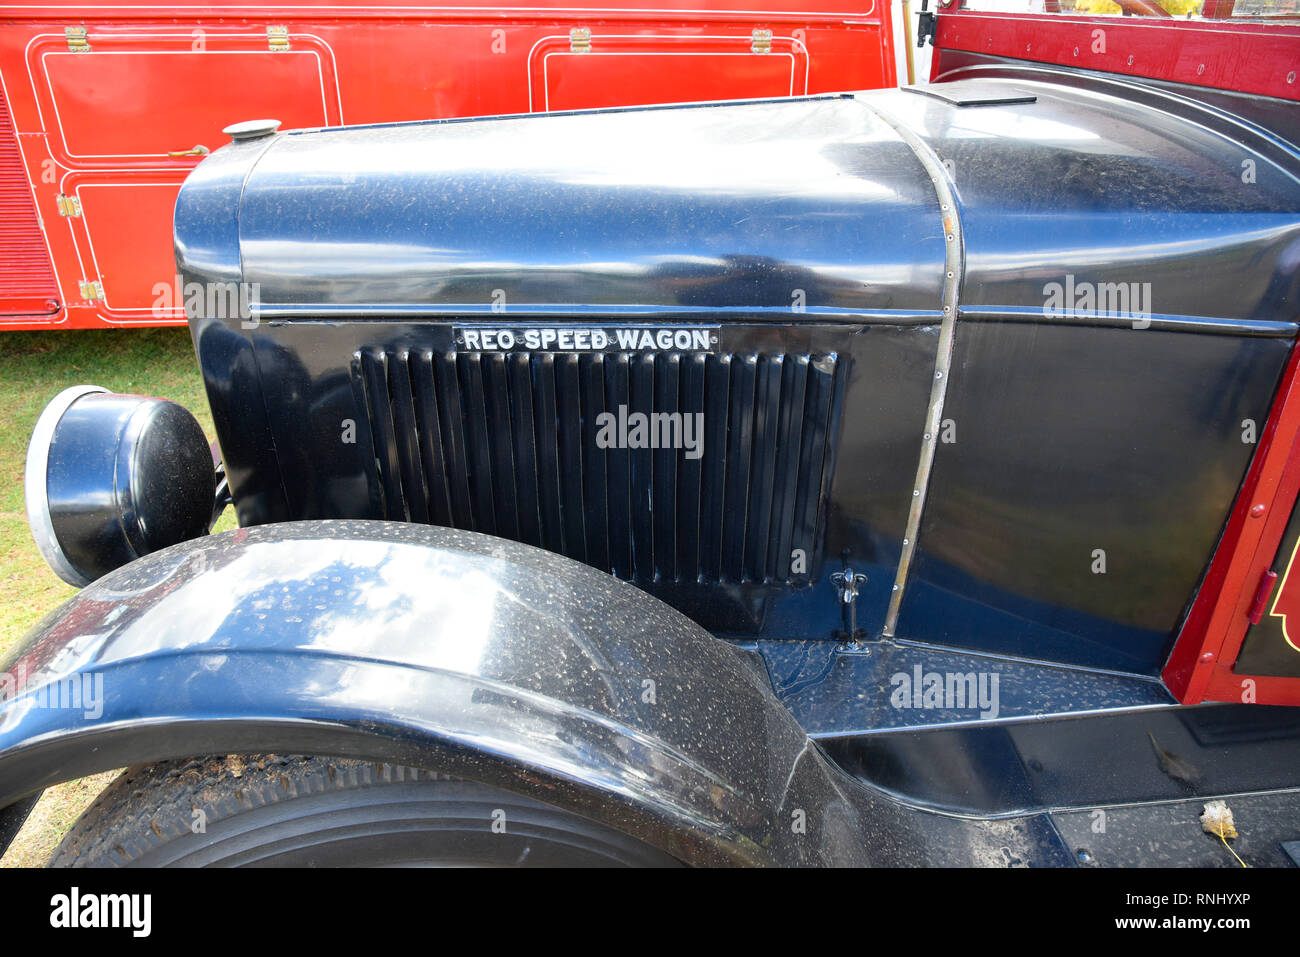 Reo Truck Stock Photos & Reo Truck Stock Images - Alamy